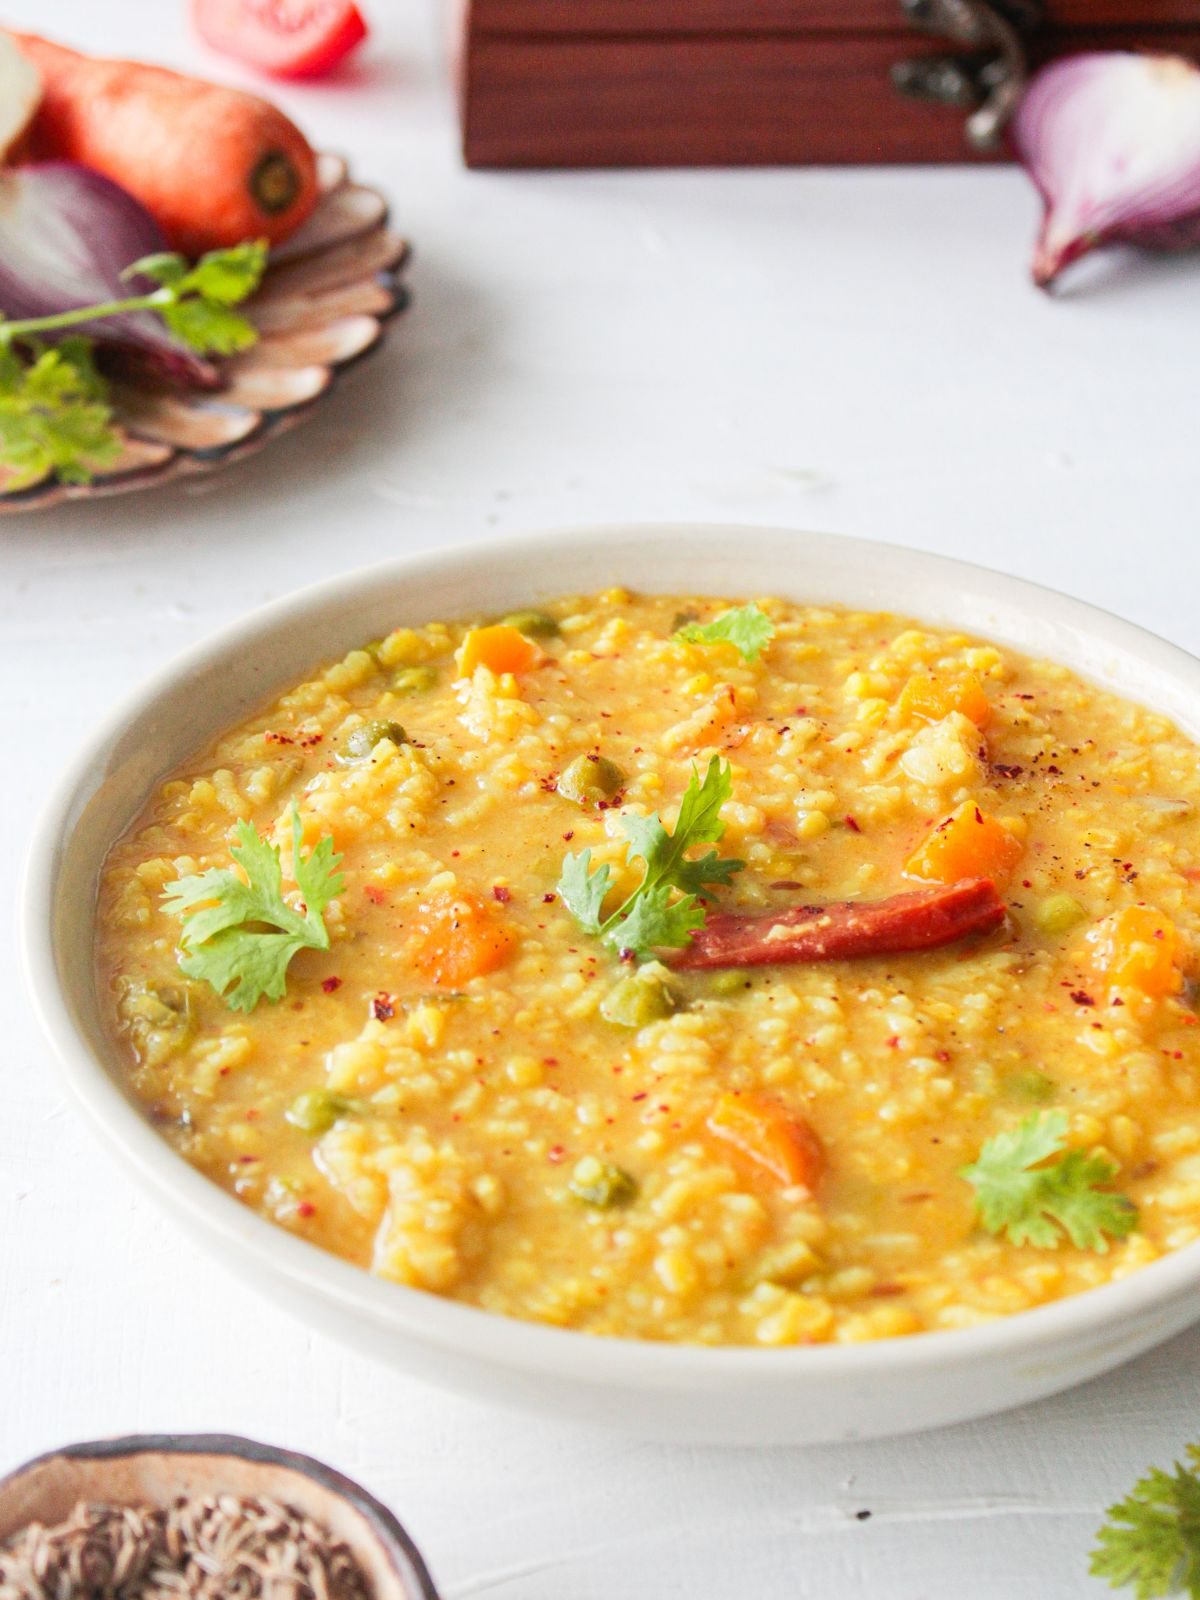 White bowl of rice and lentil porridge on white table by bowl of carrots and shallots